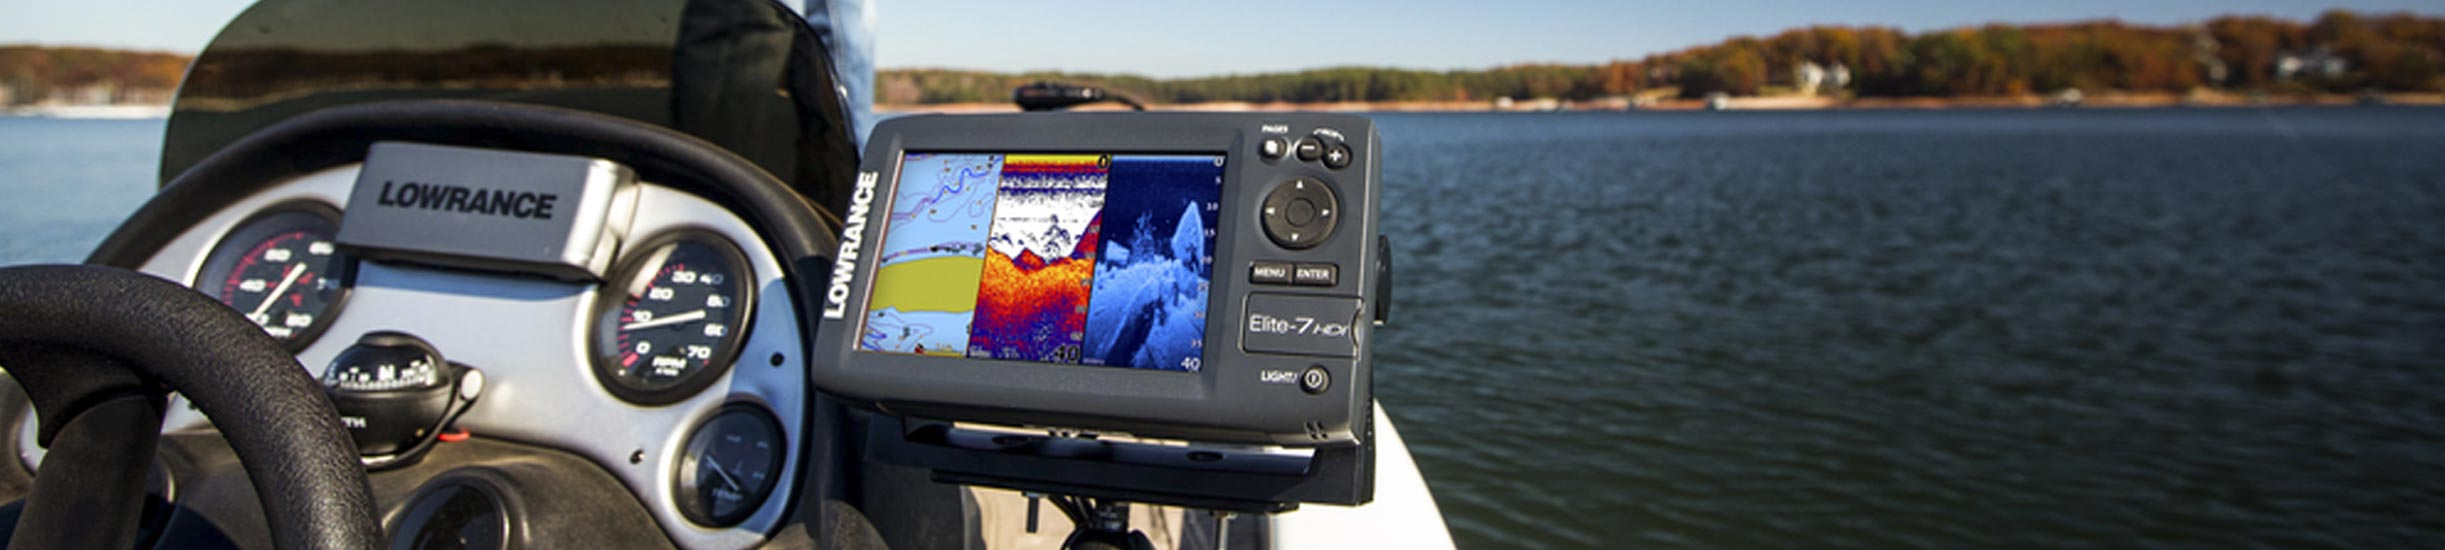 Mounts for Lowrance Devices